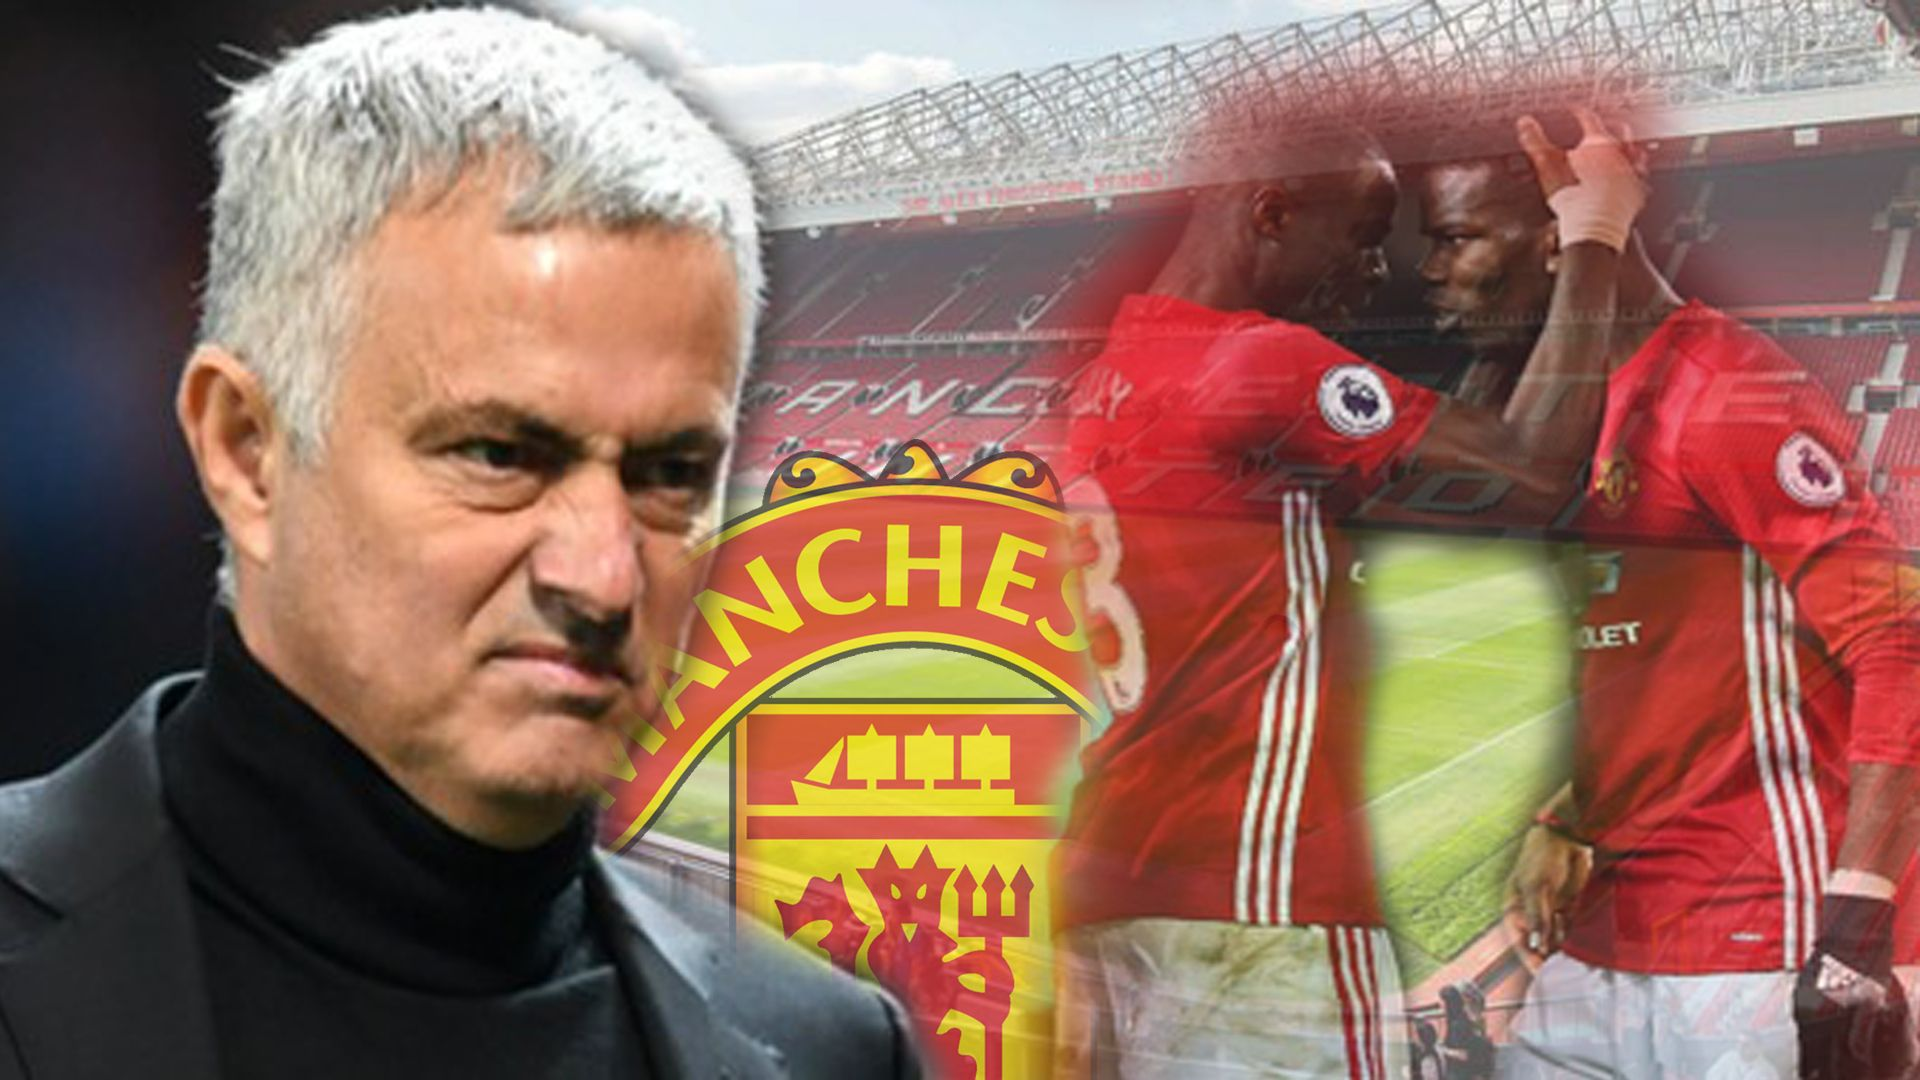 Manchester United Mutiny 5 Stars Go On Strike In Protest At Club